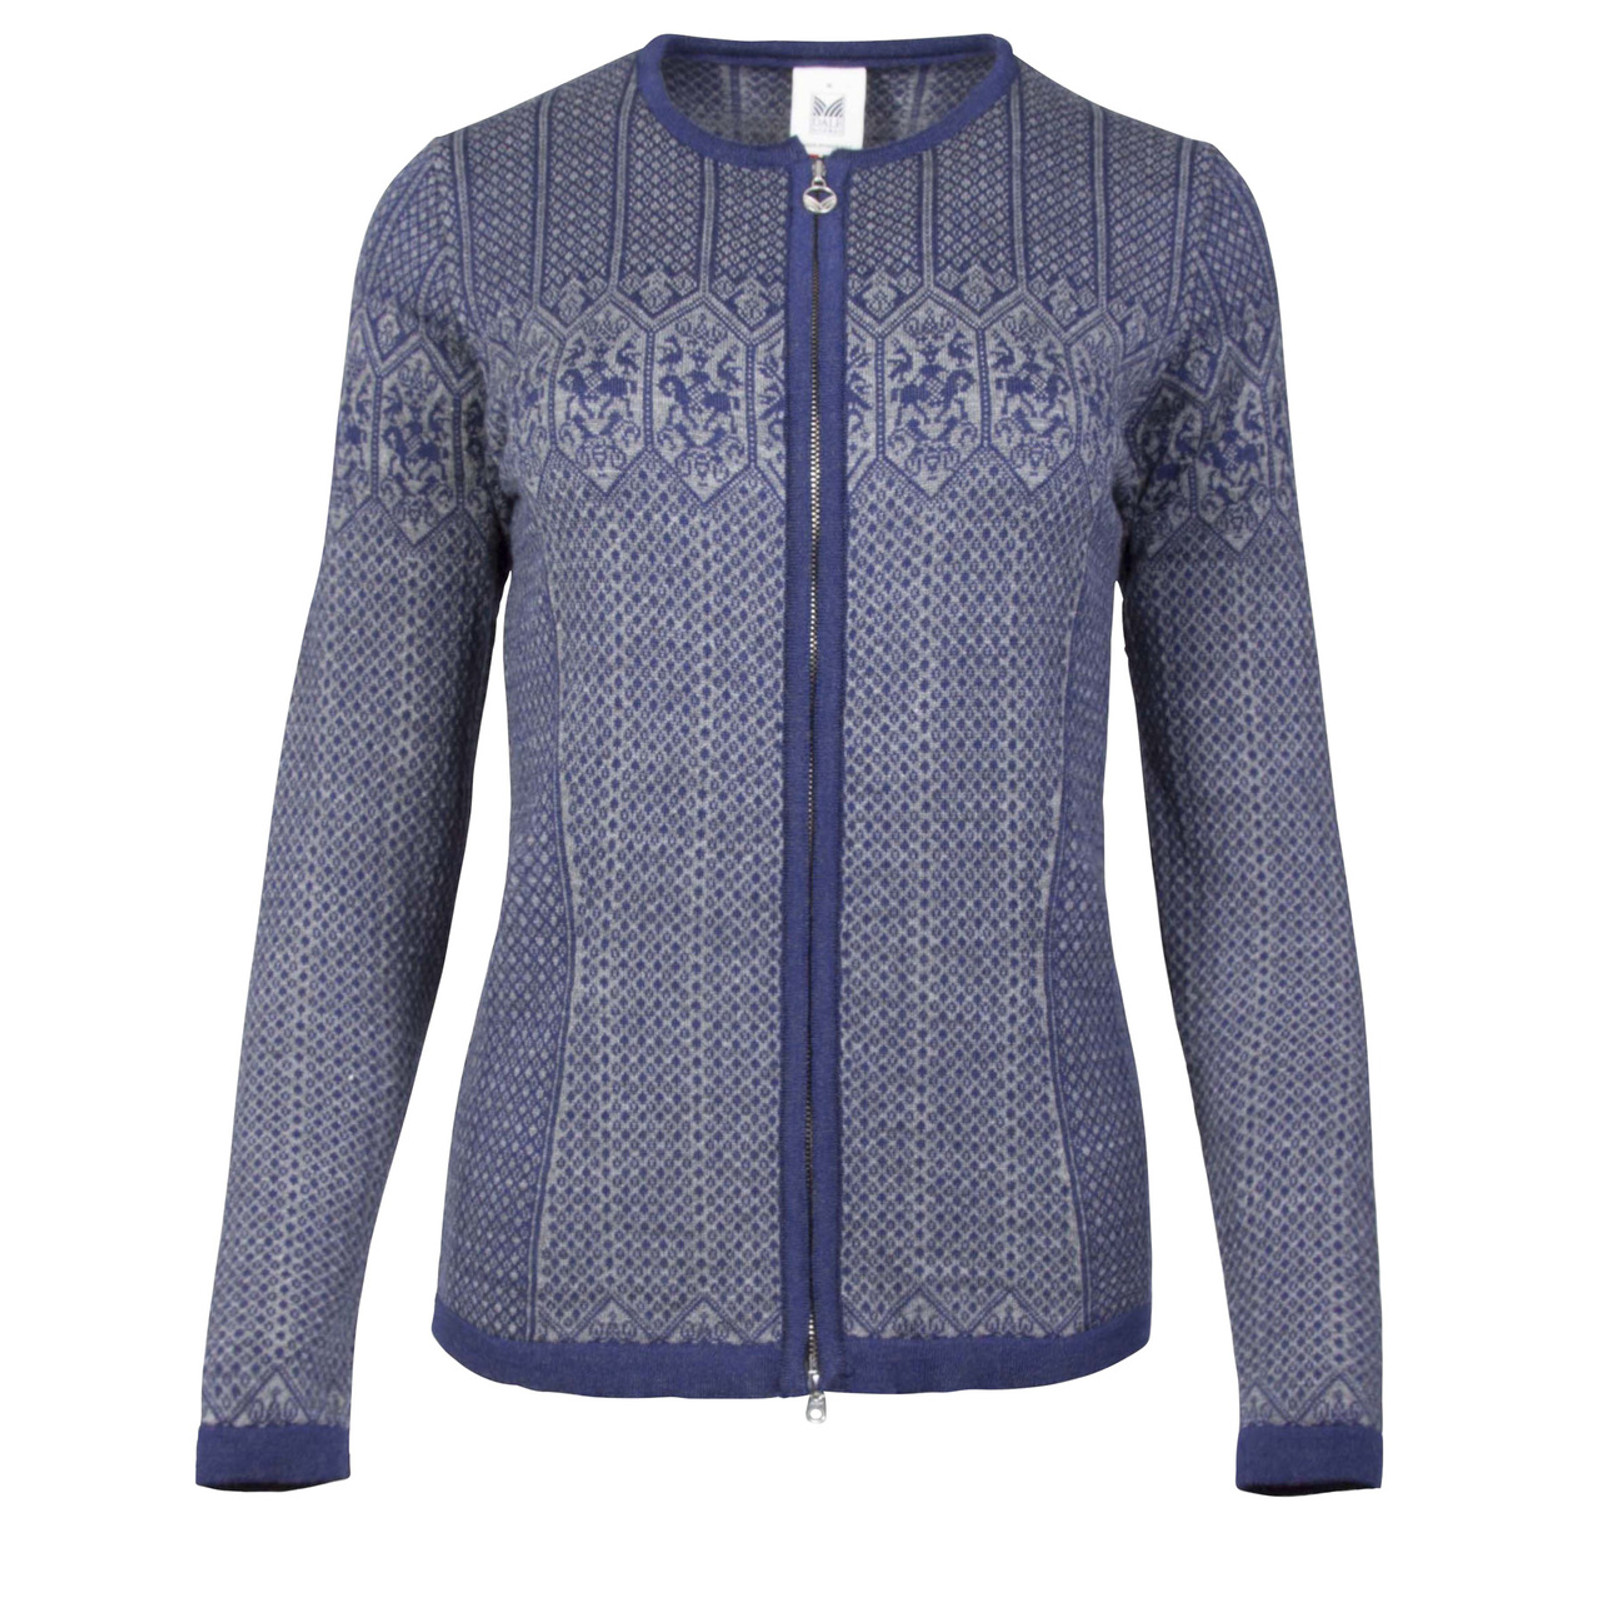 Dale of Norway, Sigrid cardigan, ladies, in Electric Storm/Smoke, 82071-C, on sale at The Nordic Shop